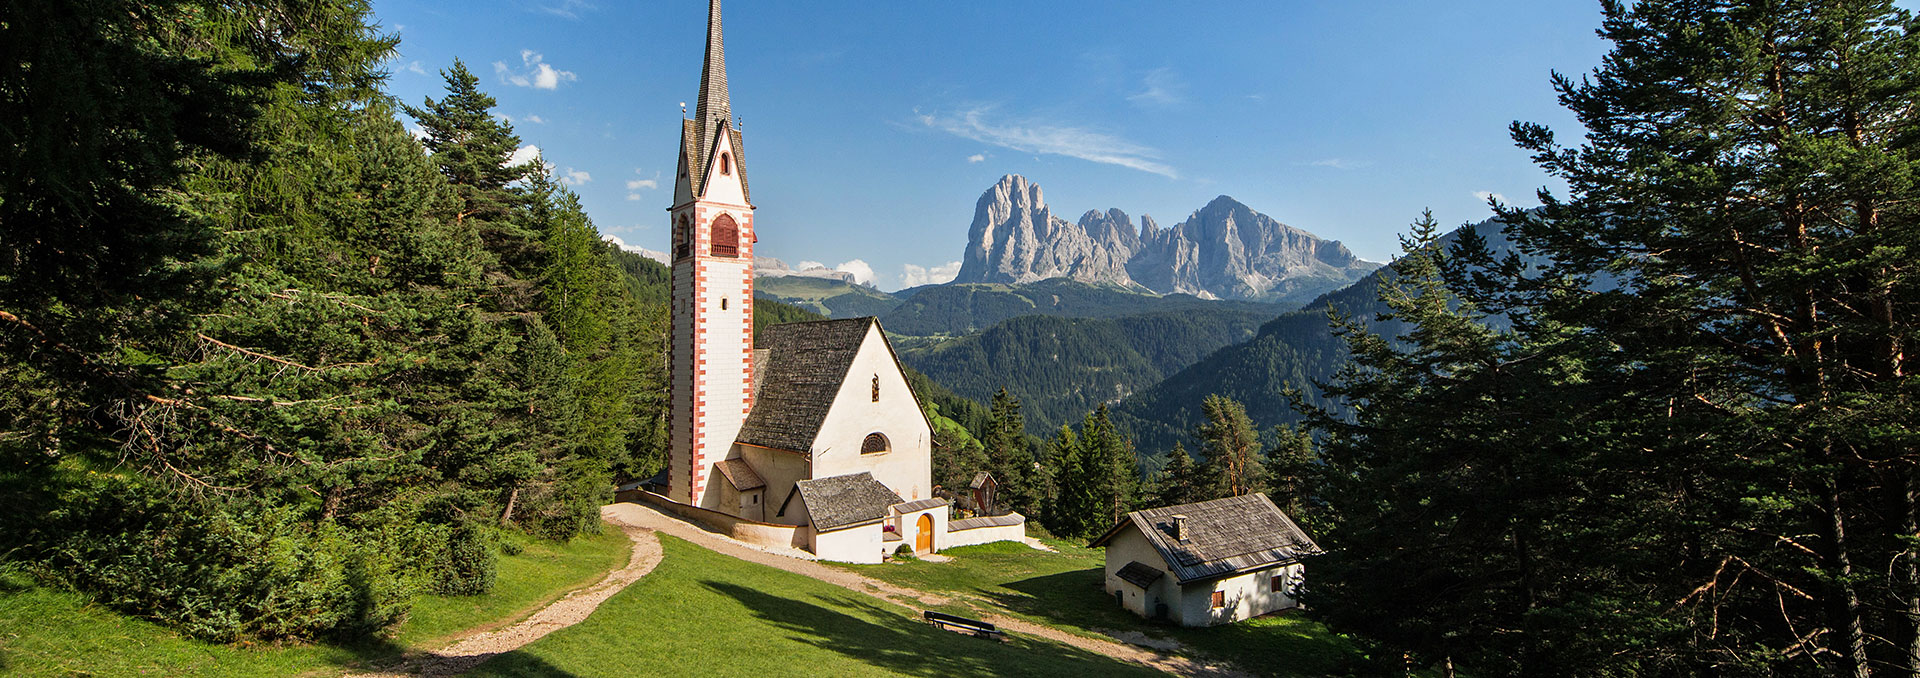 Vacanze d'estate in Val Gardena